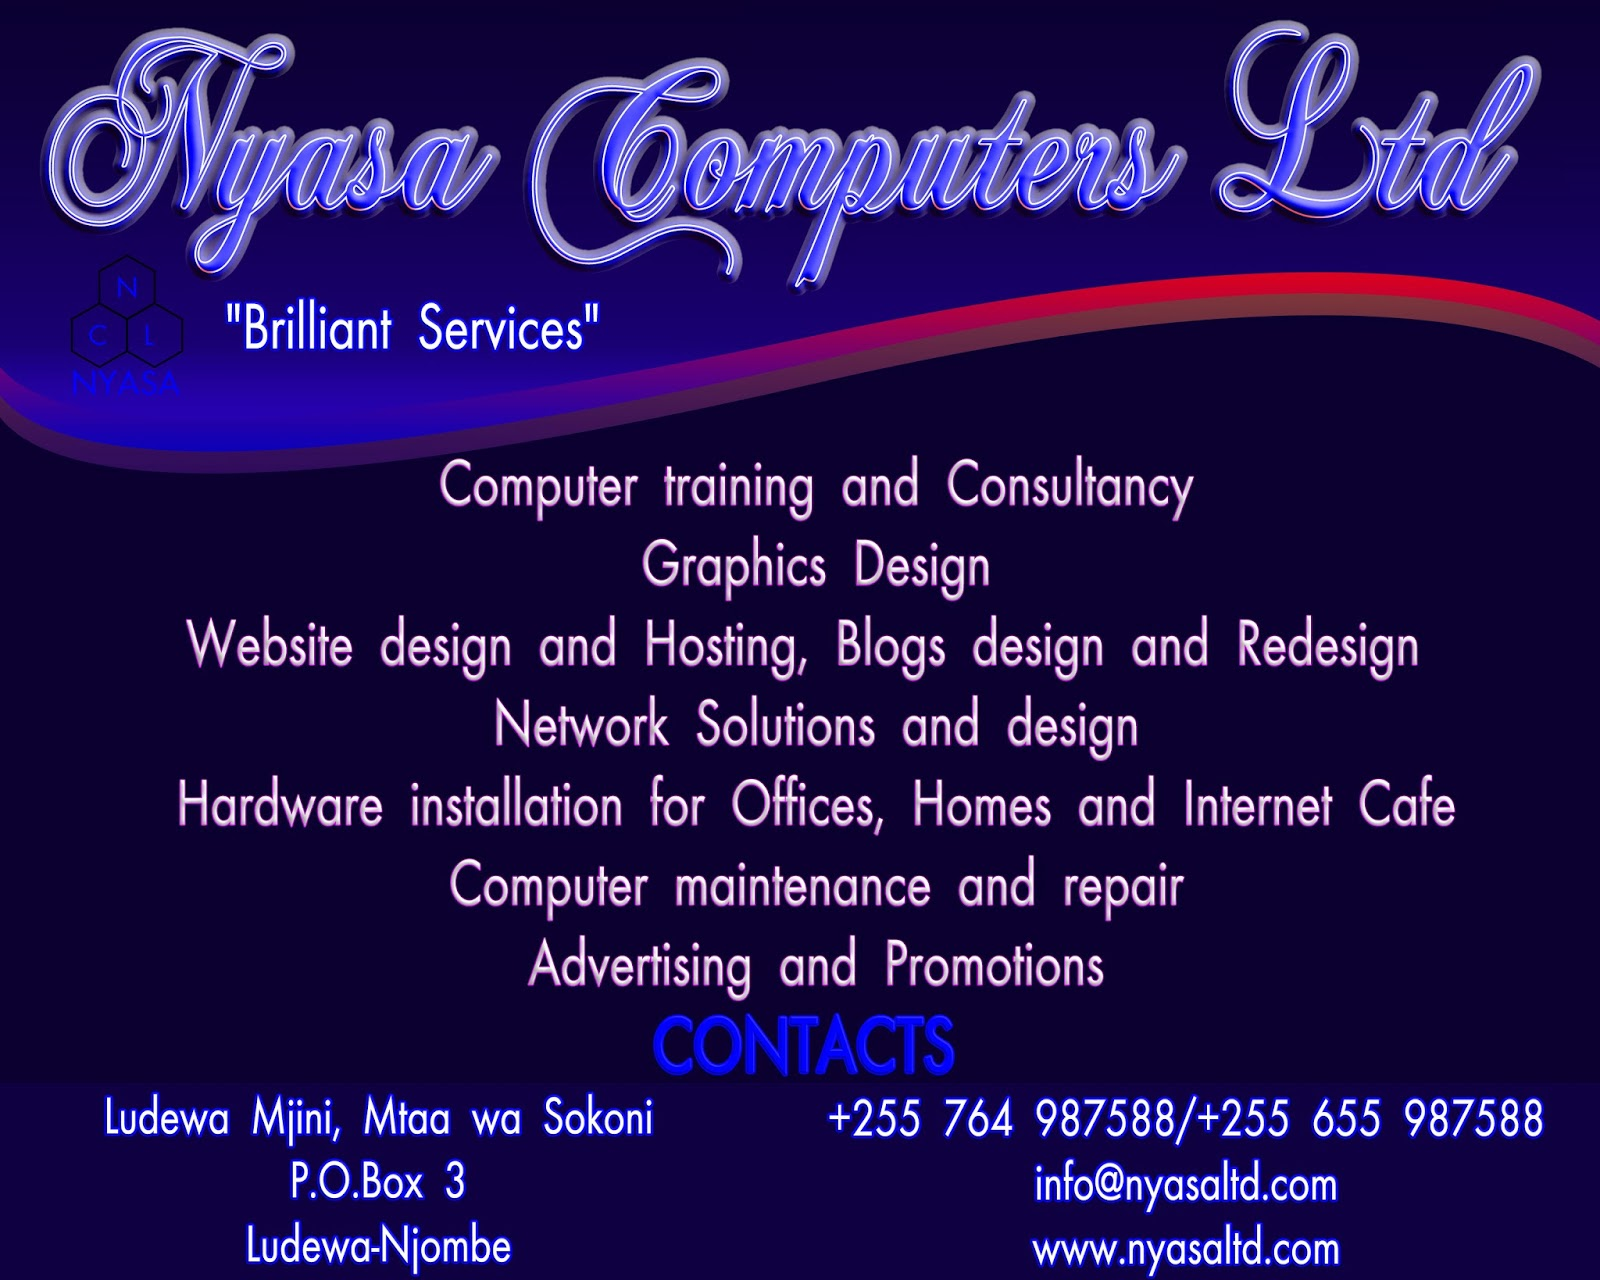 NYASA COMPUTERS LTD OFFERS TO YOU A VARIETY OF SERVICES AT